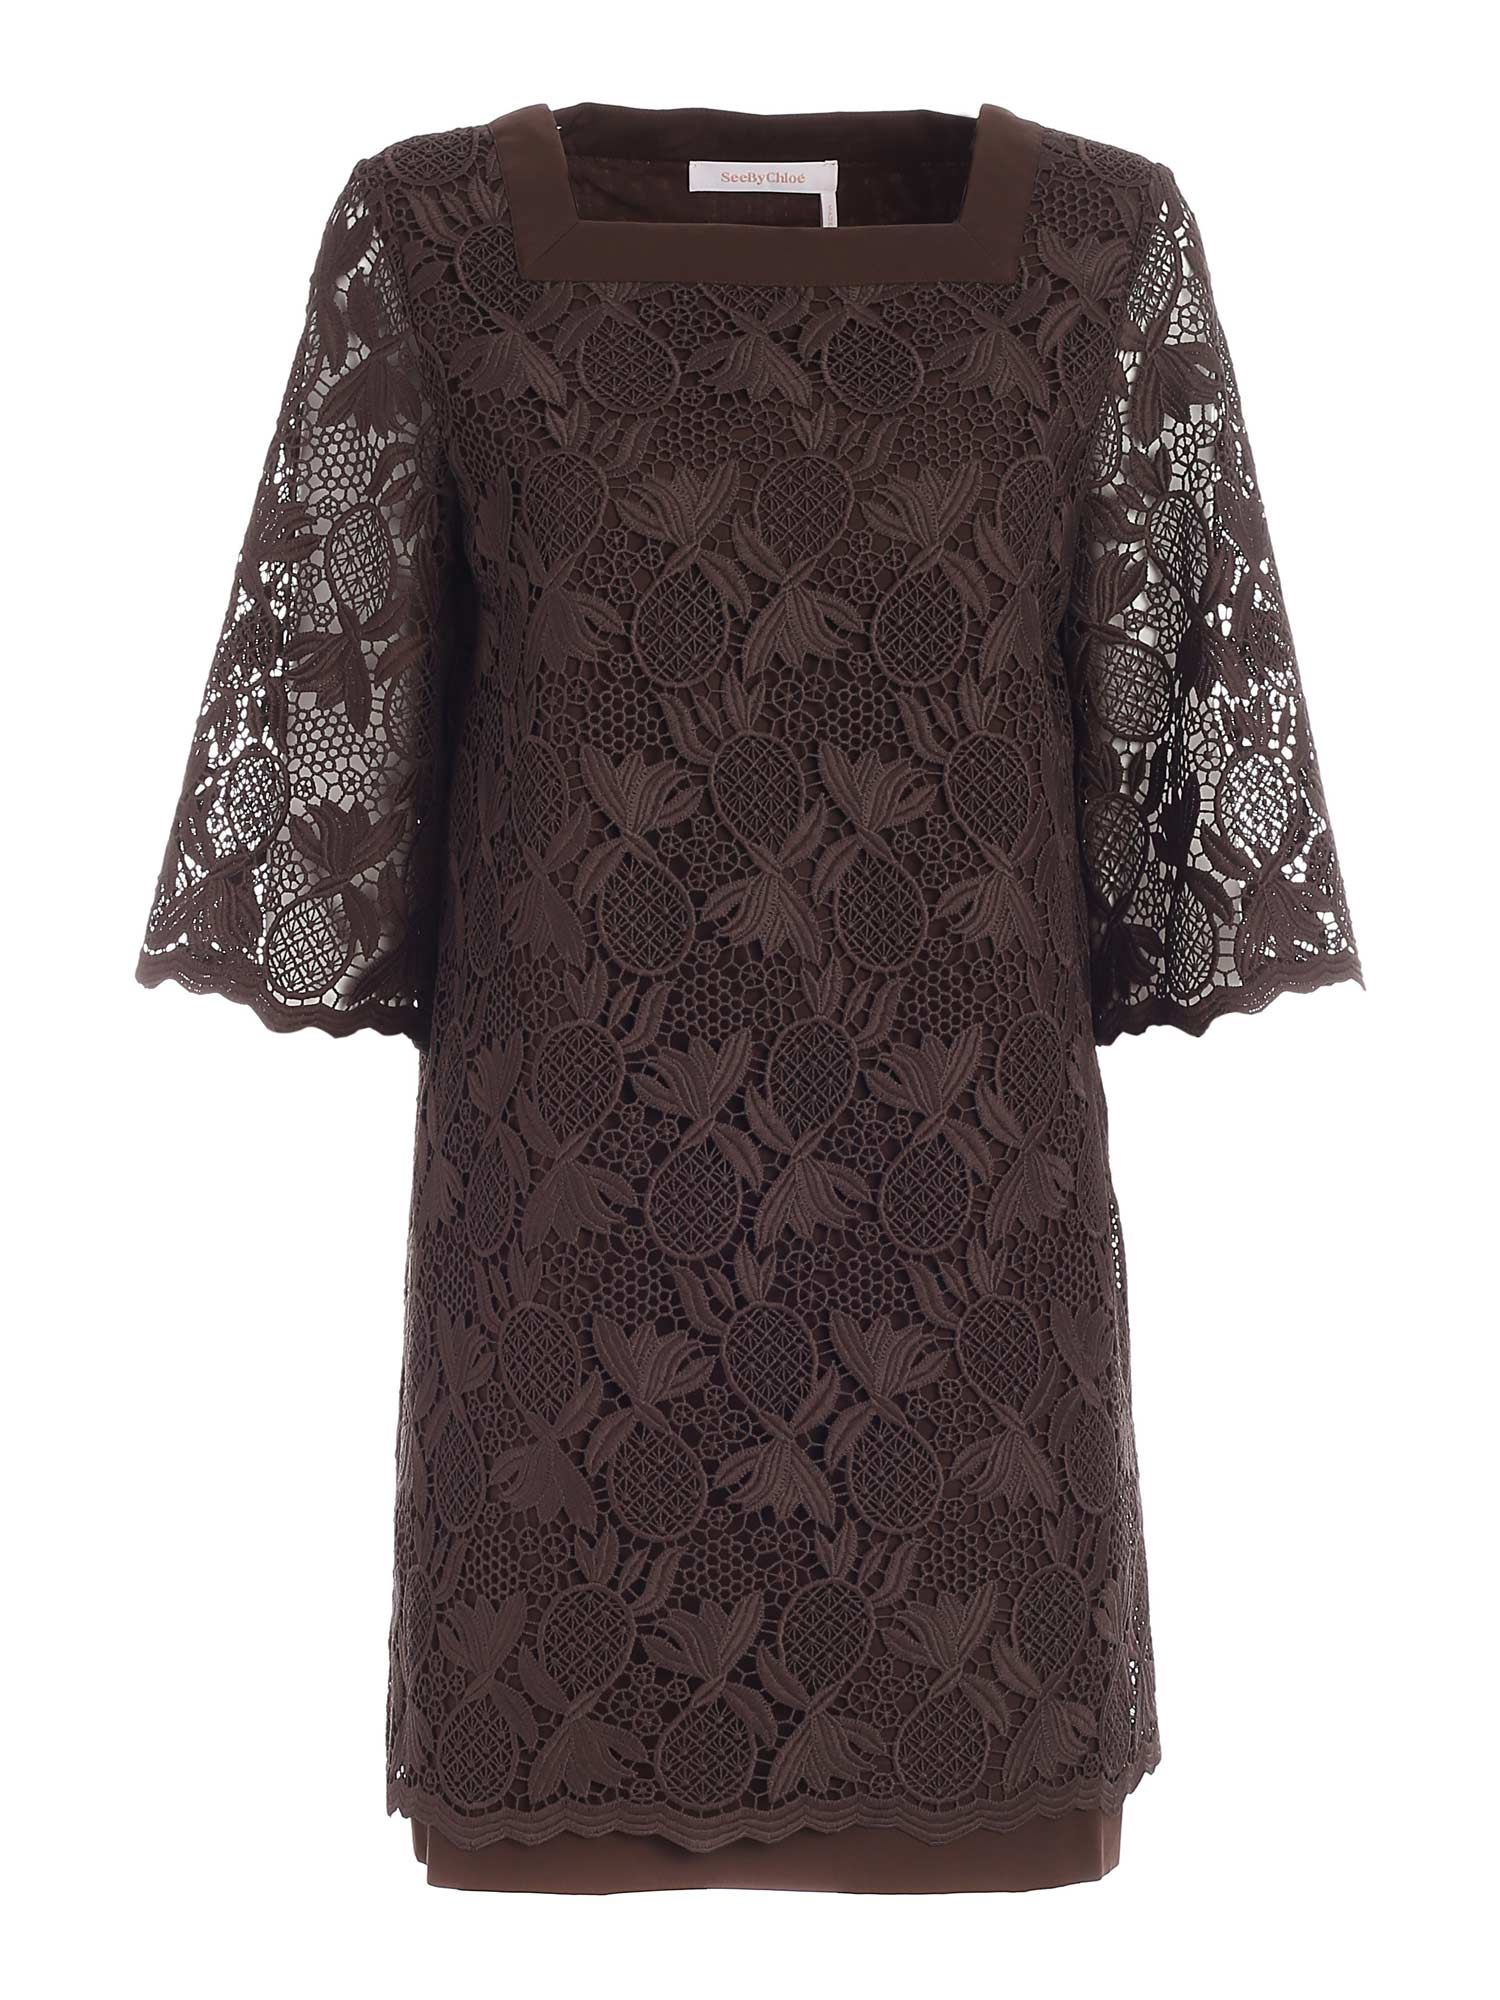 See By Chloé SHORT DRESS IN BROWN